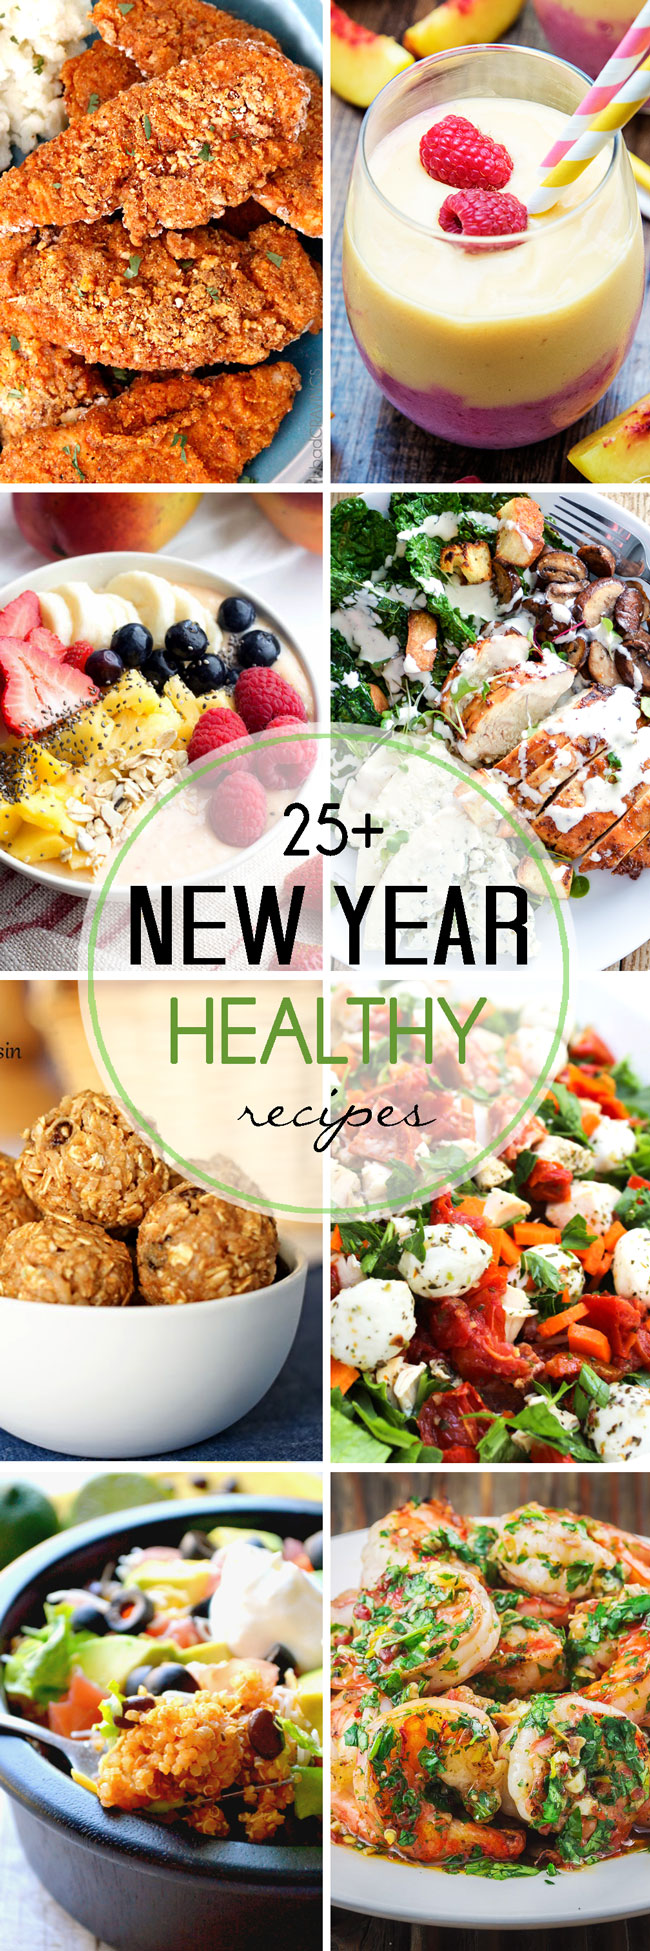 Healthy-New-Years-Recipes---Pinterest